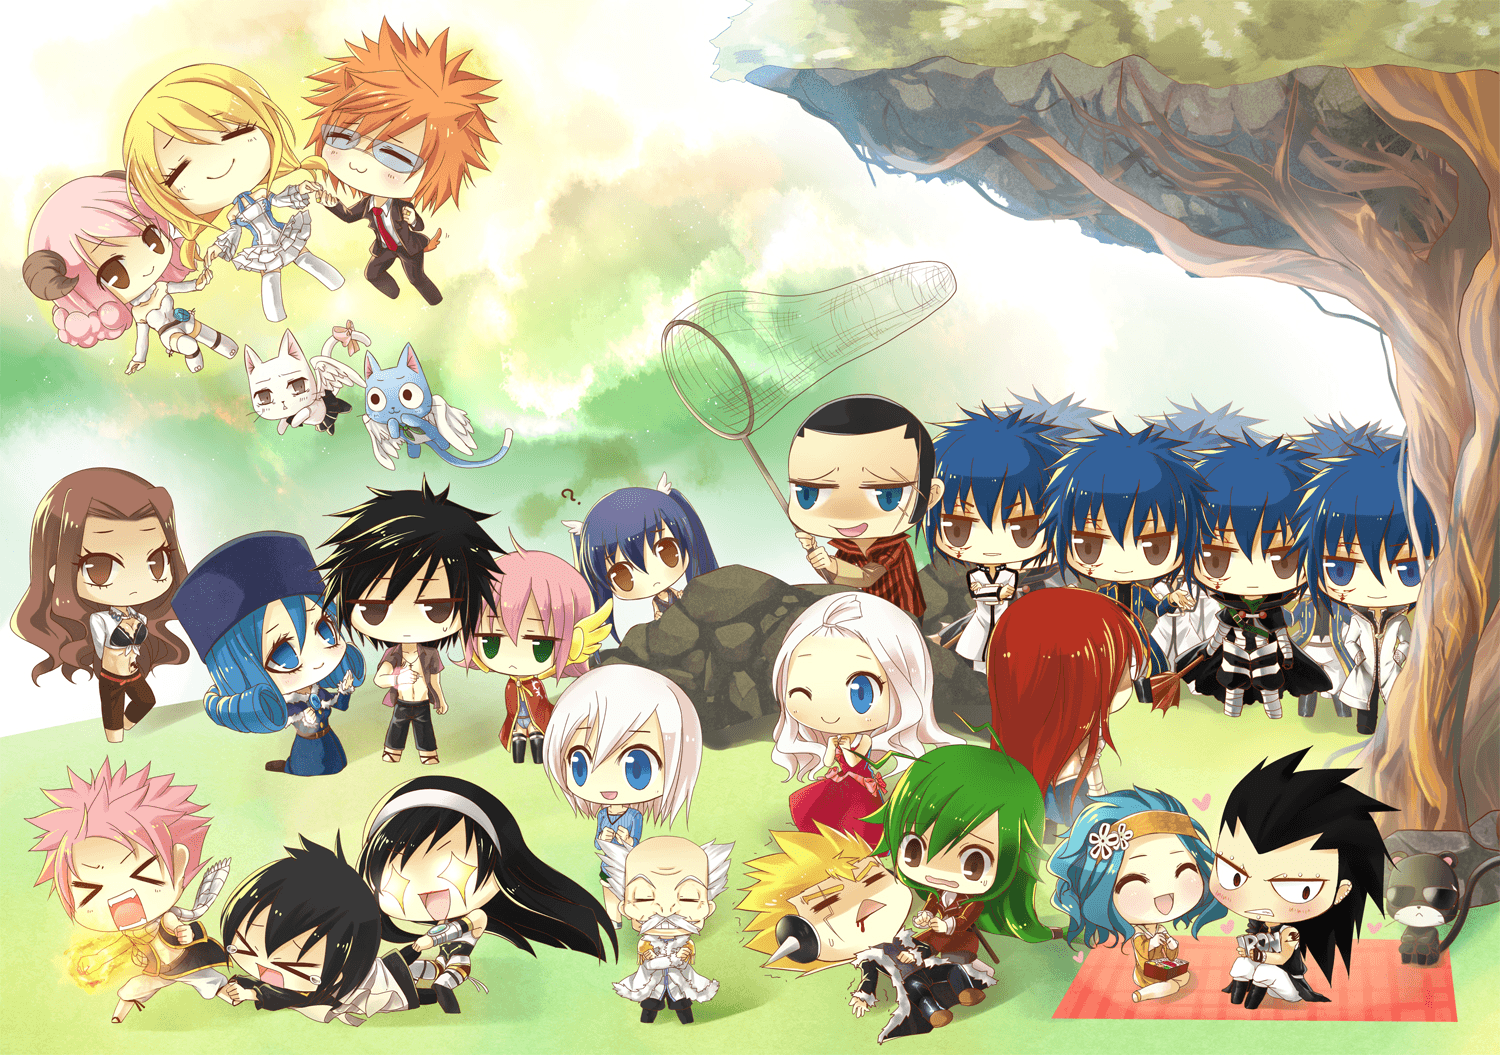 Chibi Fairy Tail Anime Wallpapers Top Free Chibi Fairy Tail Anime Backgrounds Wallpaperaccess